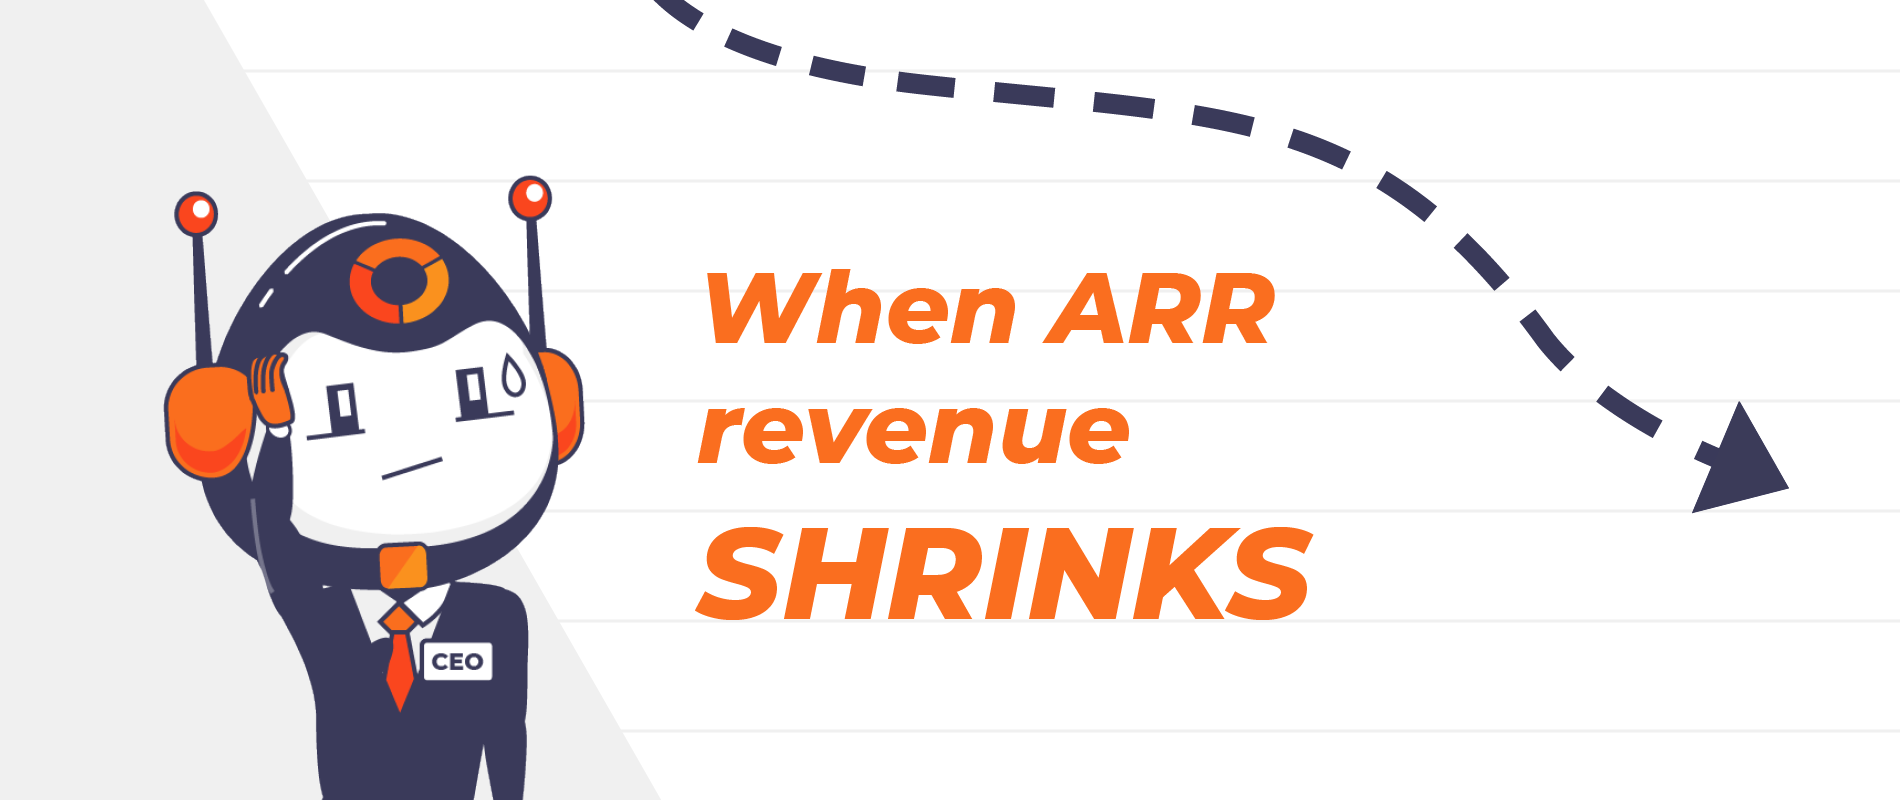 What To Do When Your ARR Revenue Is Shrinking